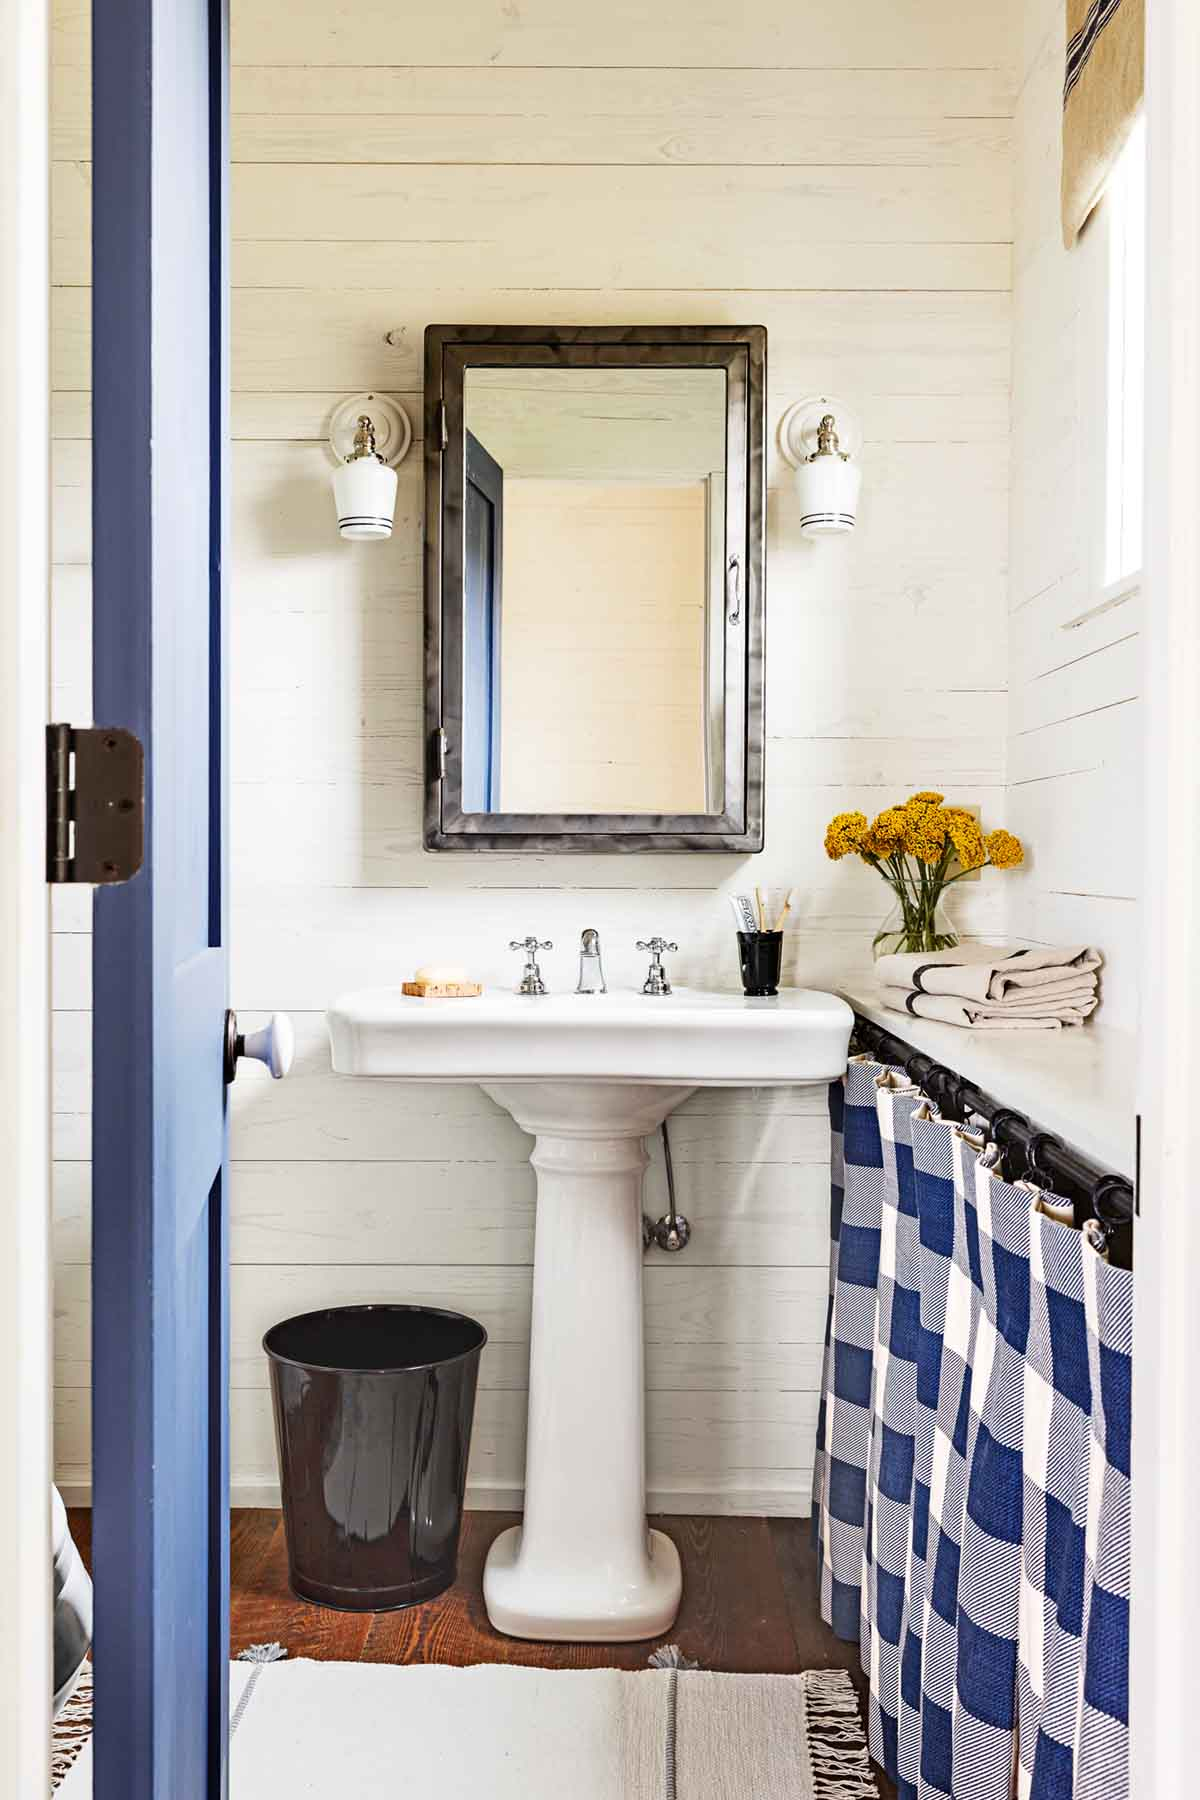 Rustic bathrooms designs - Rustic Bathrooms Designs 26